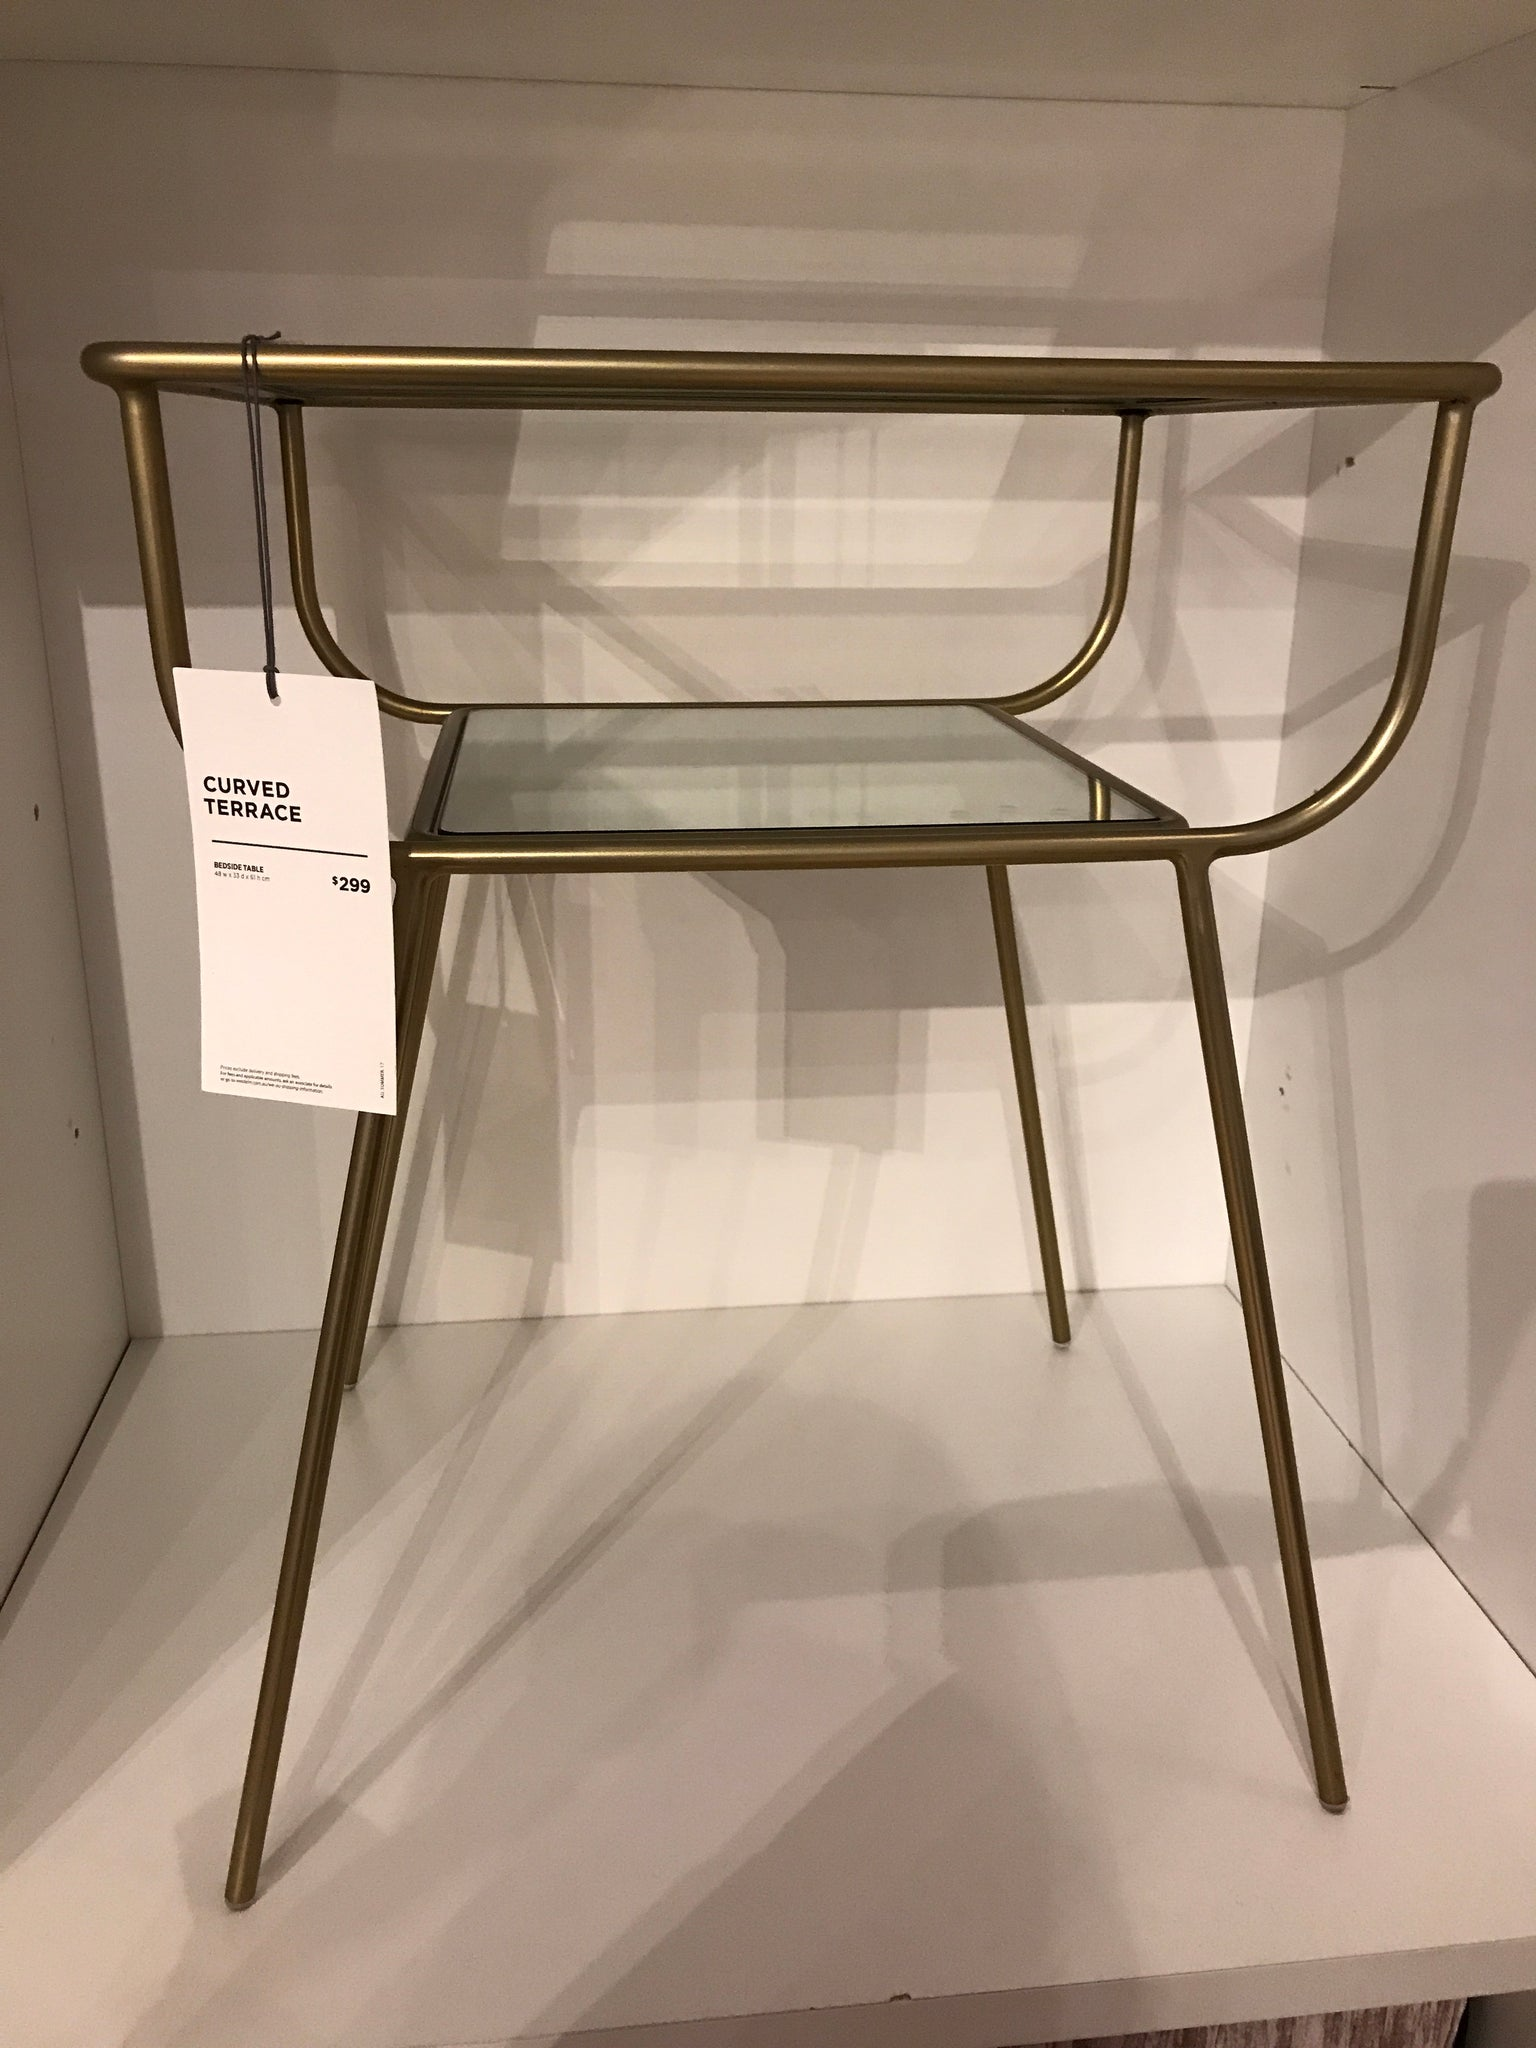 West Elm Curved Terrace Glass Bedside Table